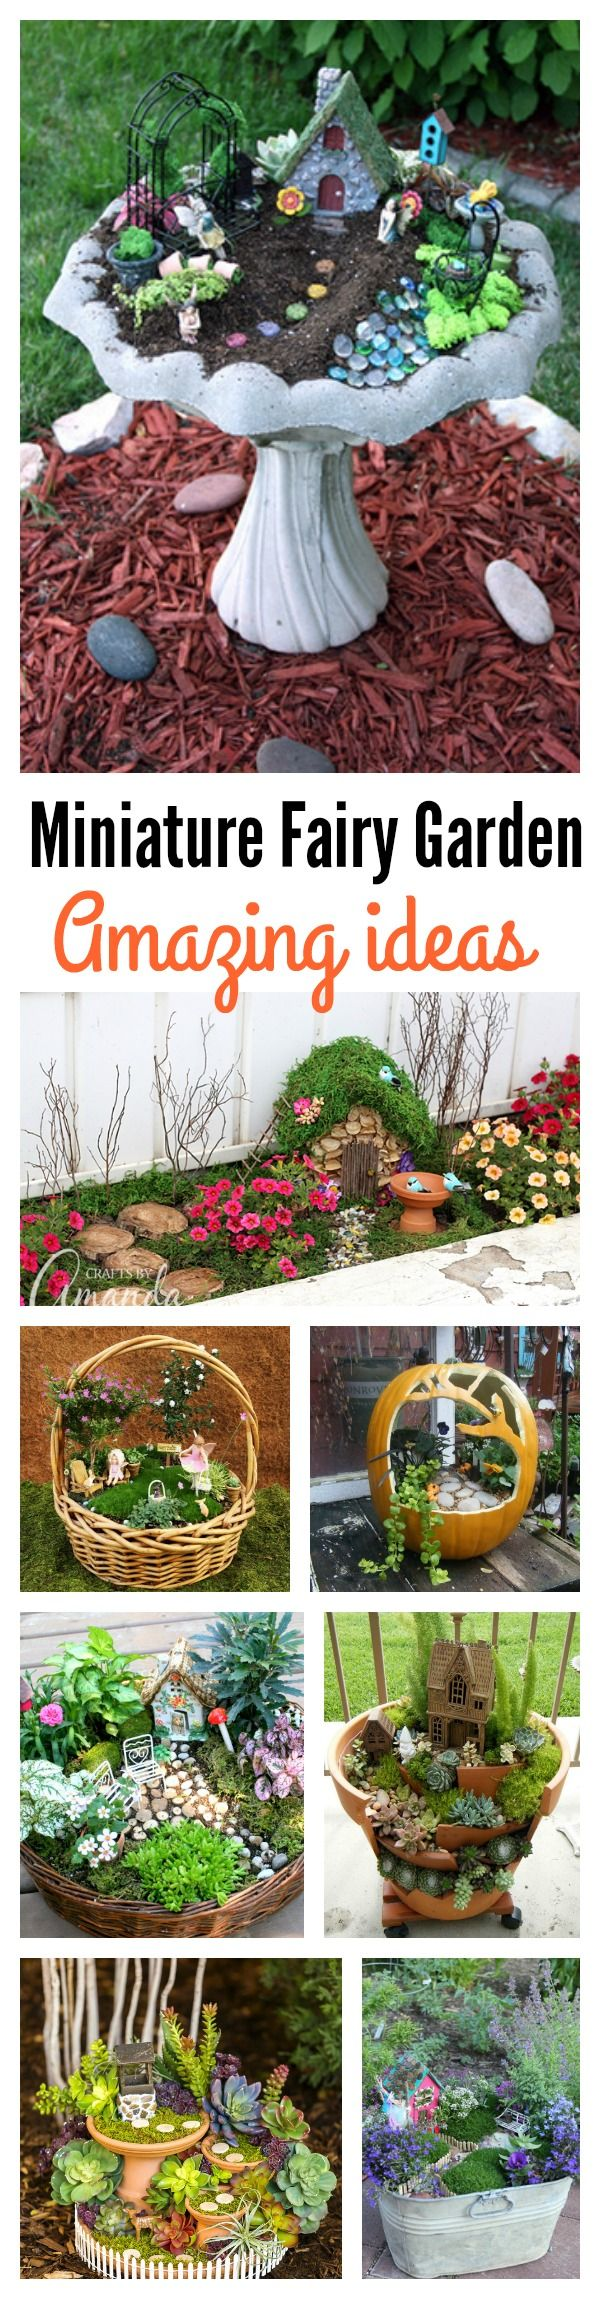 Fairy Gardens Ideas 40 magical diy fairy garden ideas 8 Amazing Miniature Fairy Garden Diy Ideas